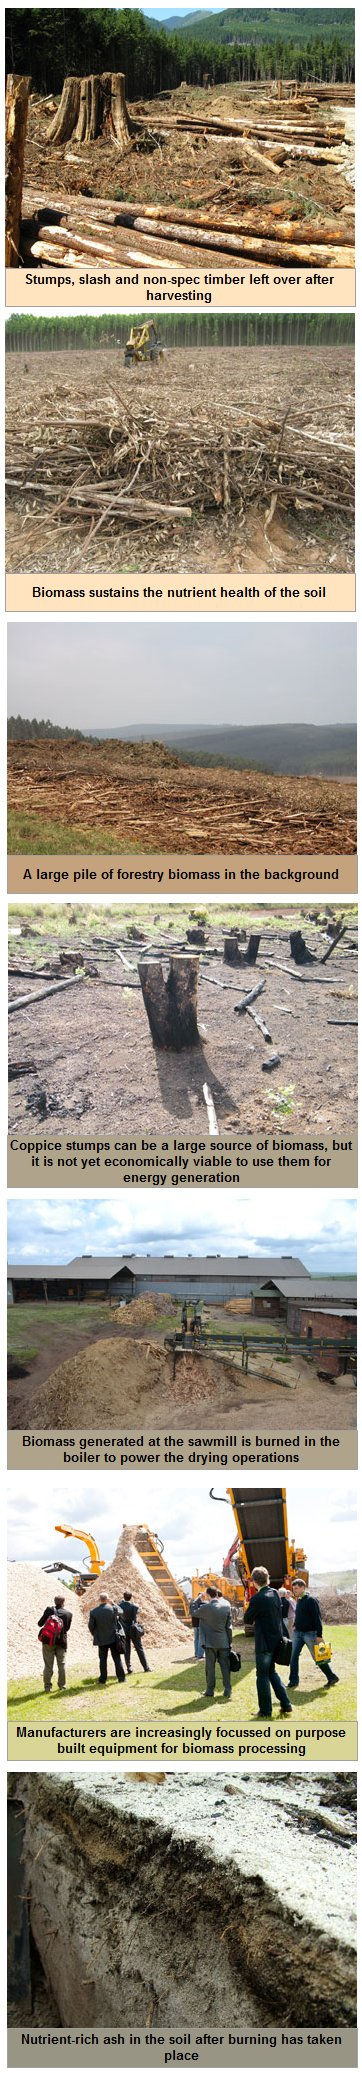 The role of biomass in sustainable stand productivity